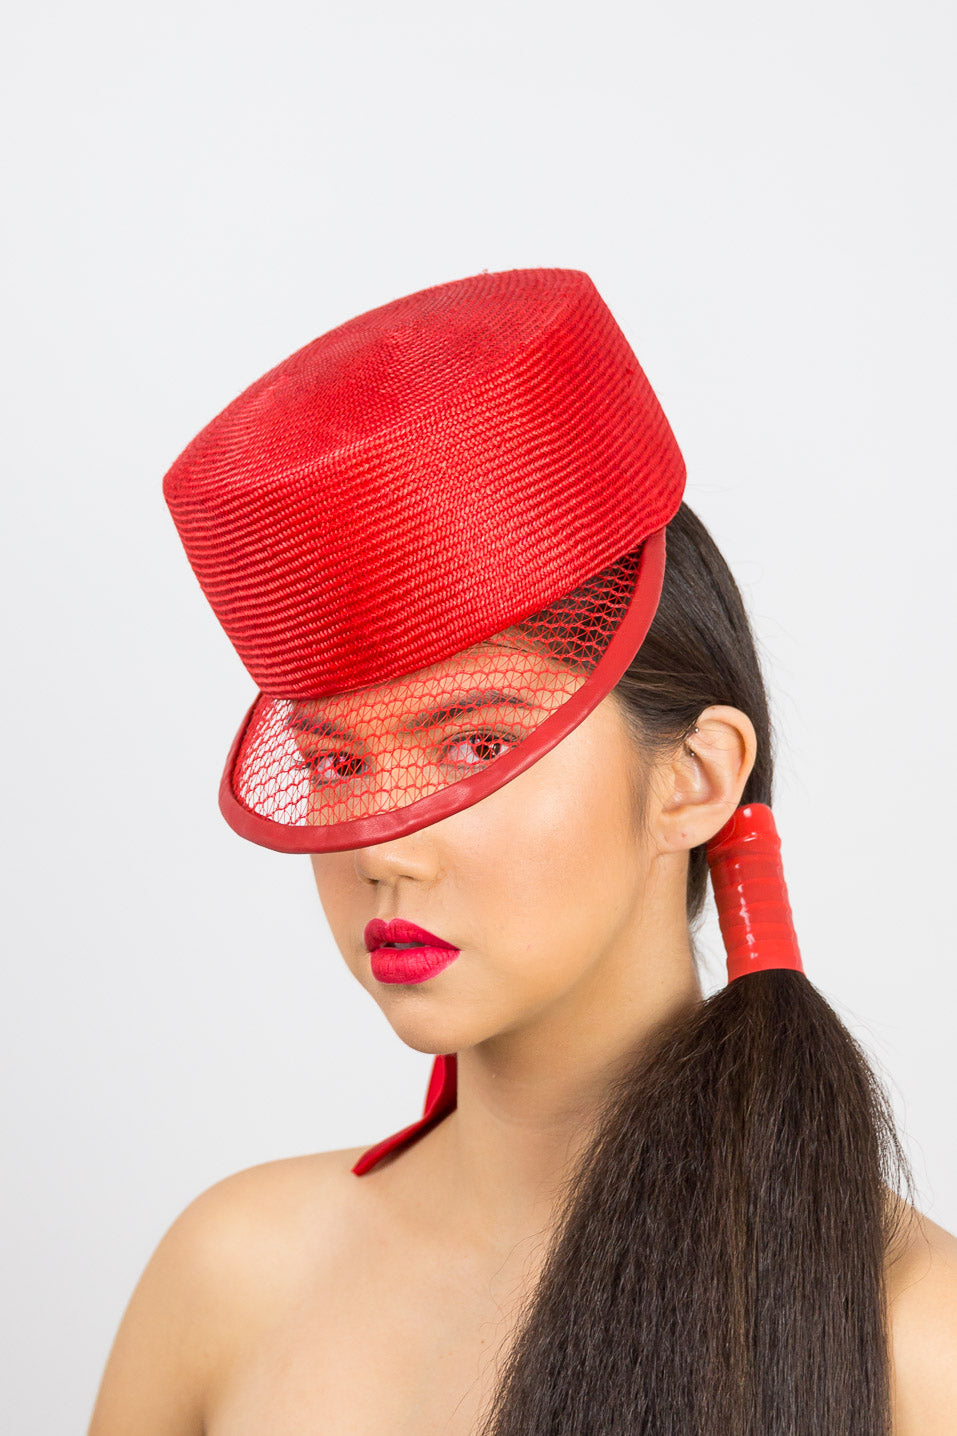 PIPER-red flat crown cap with open weave visor and tie